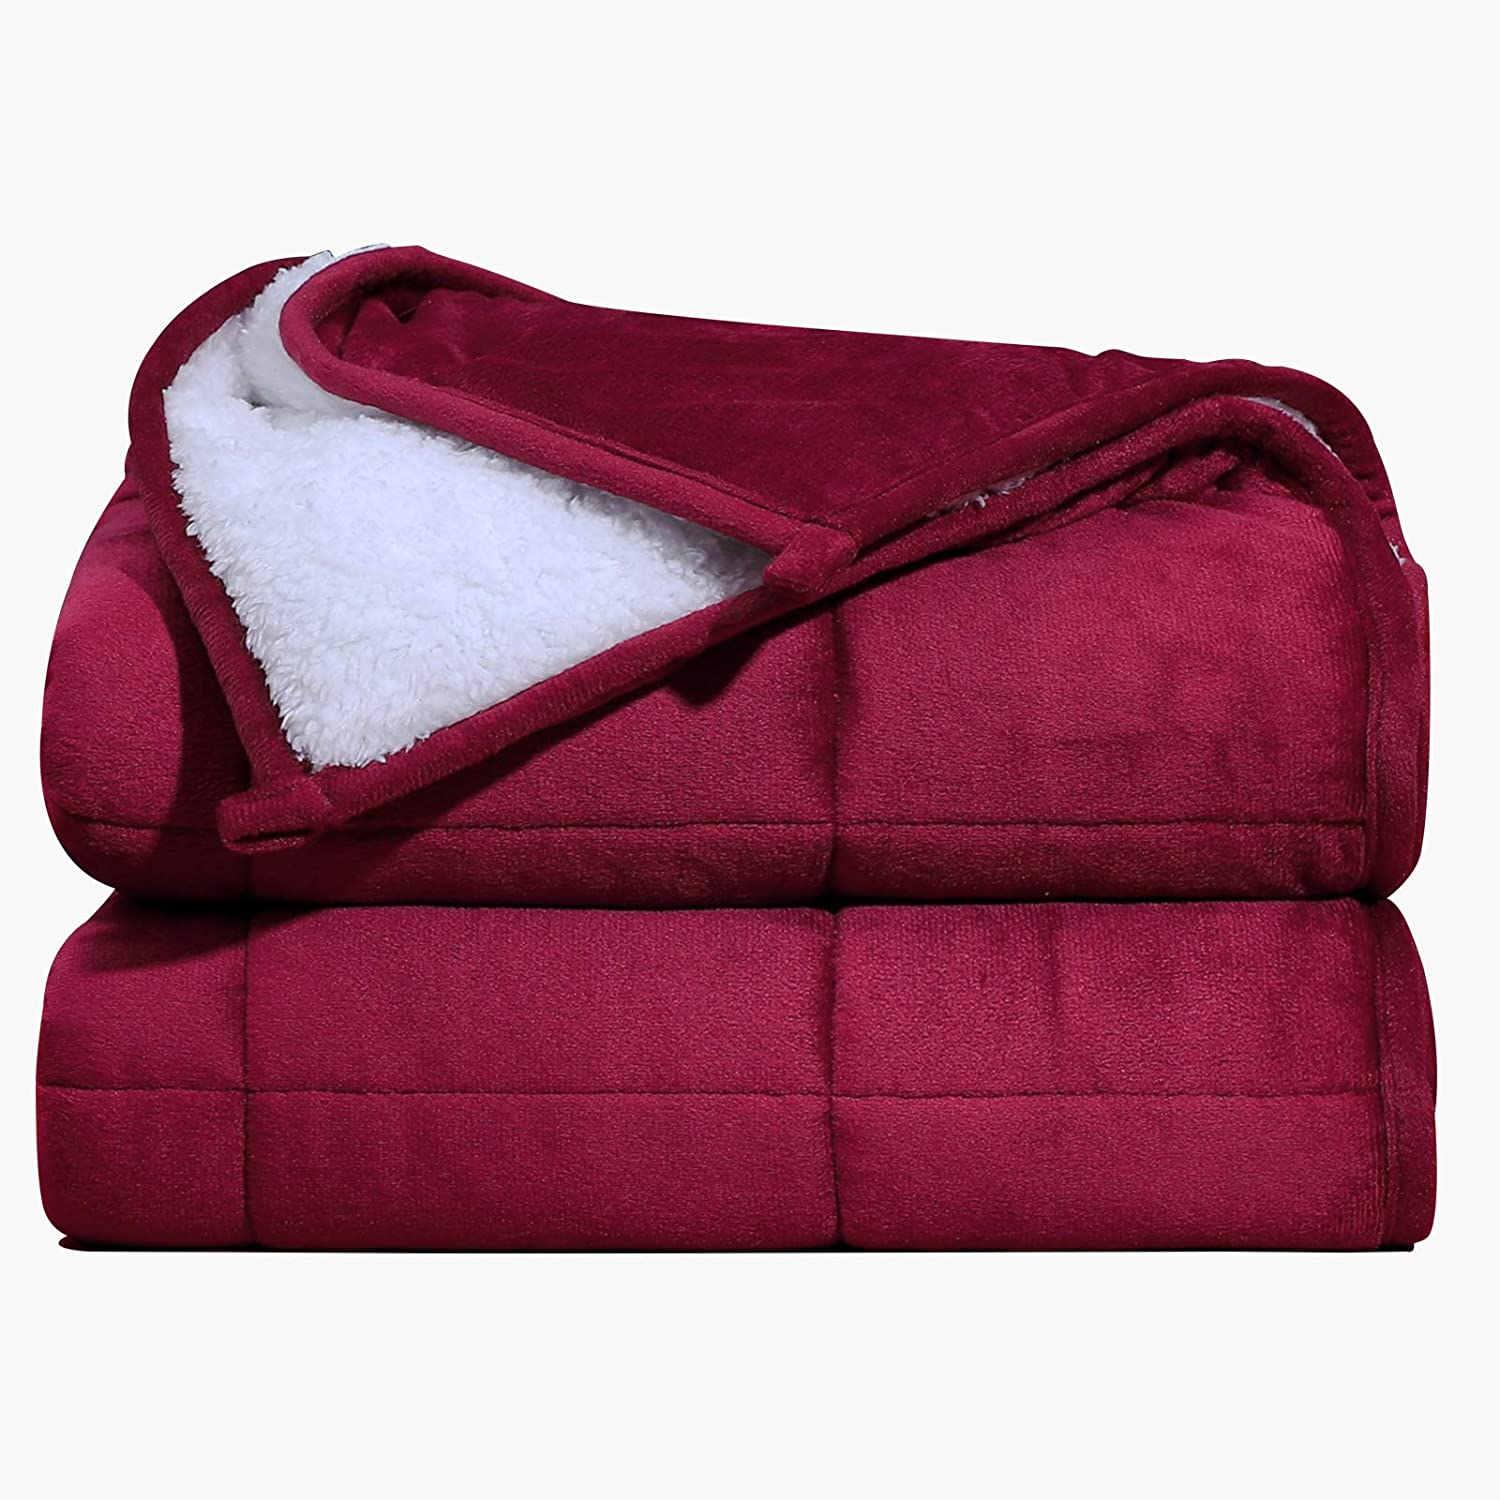 Max 79% OFF Max 47% OFF Argstar Sherpa Fleece Weighted Blanket for On 20 Adults Lbs Quee